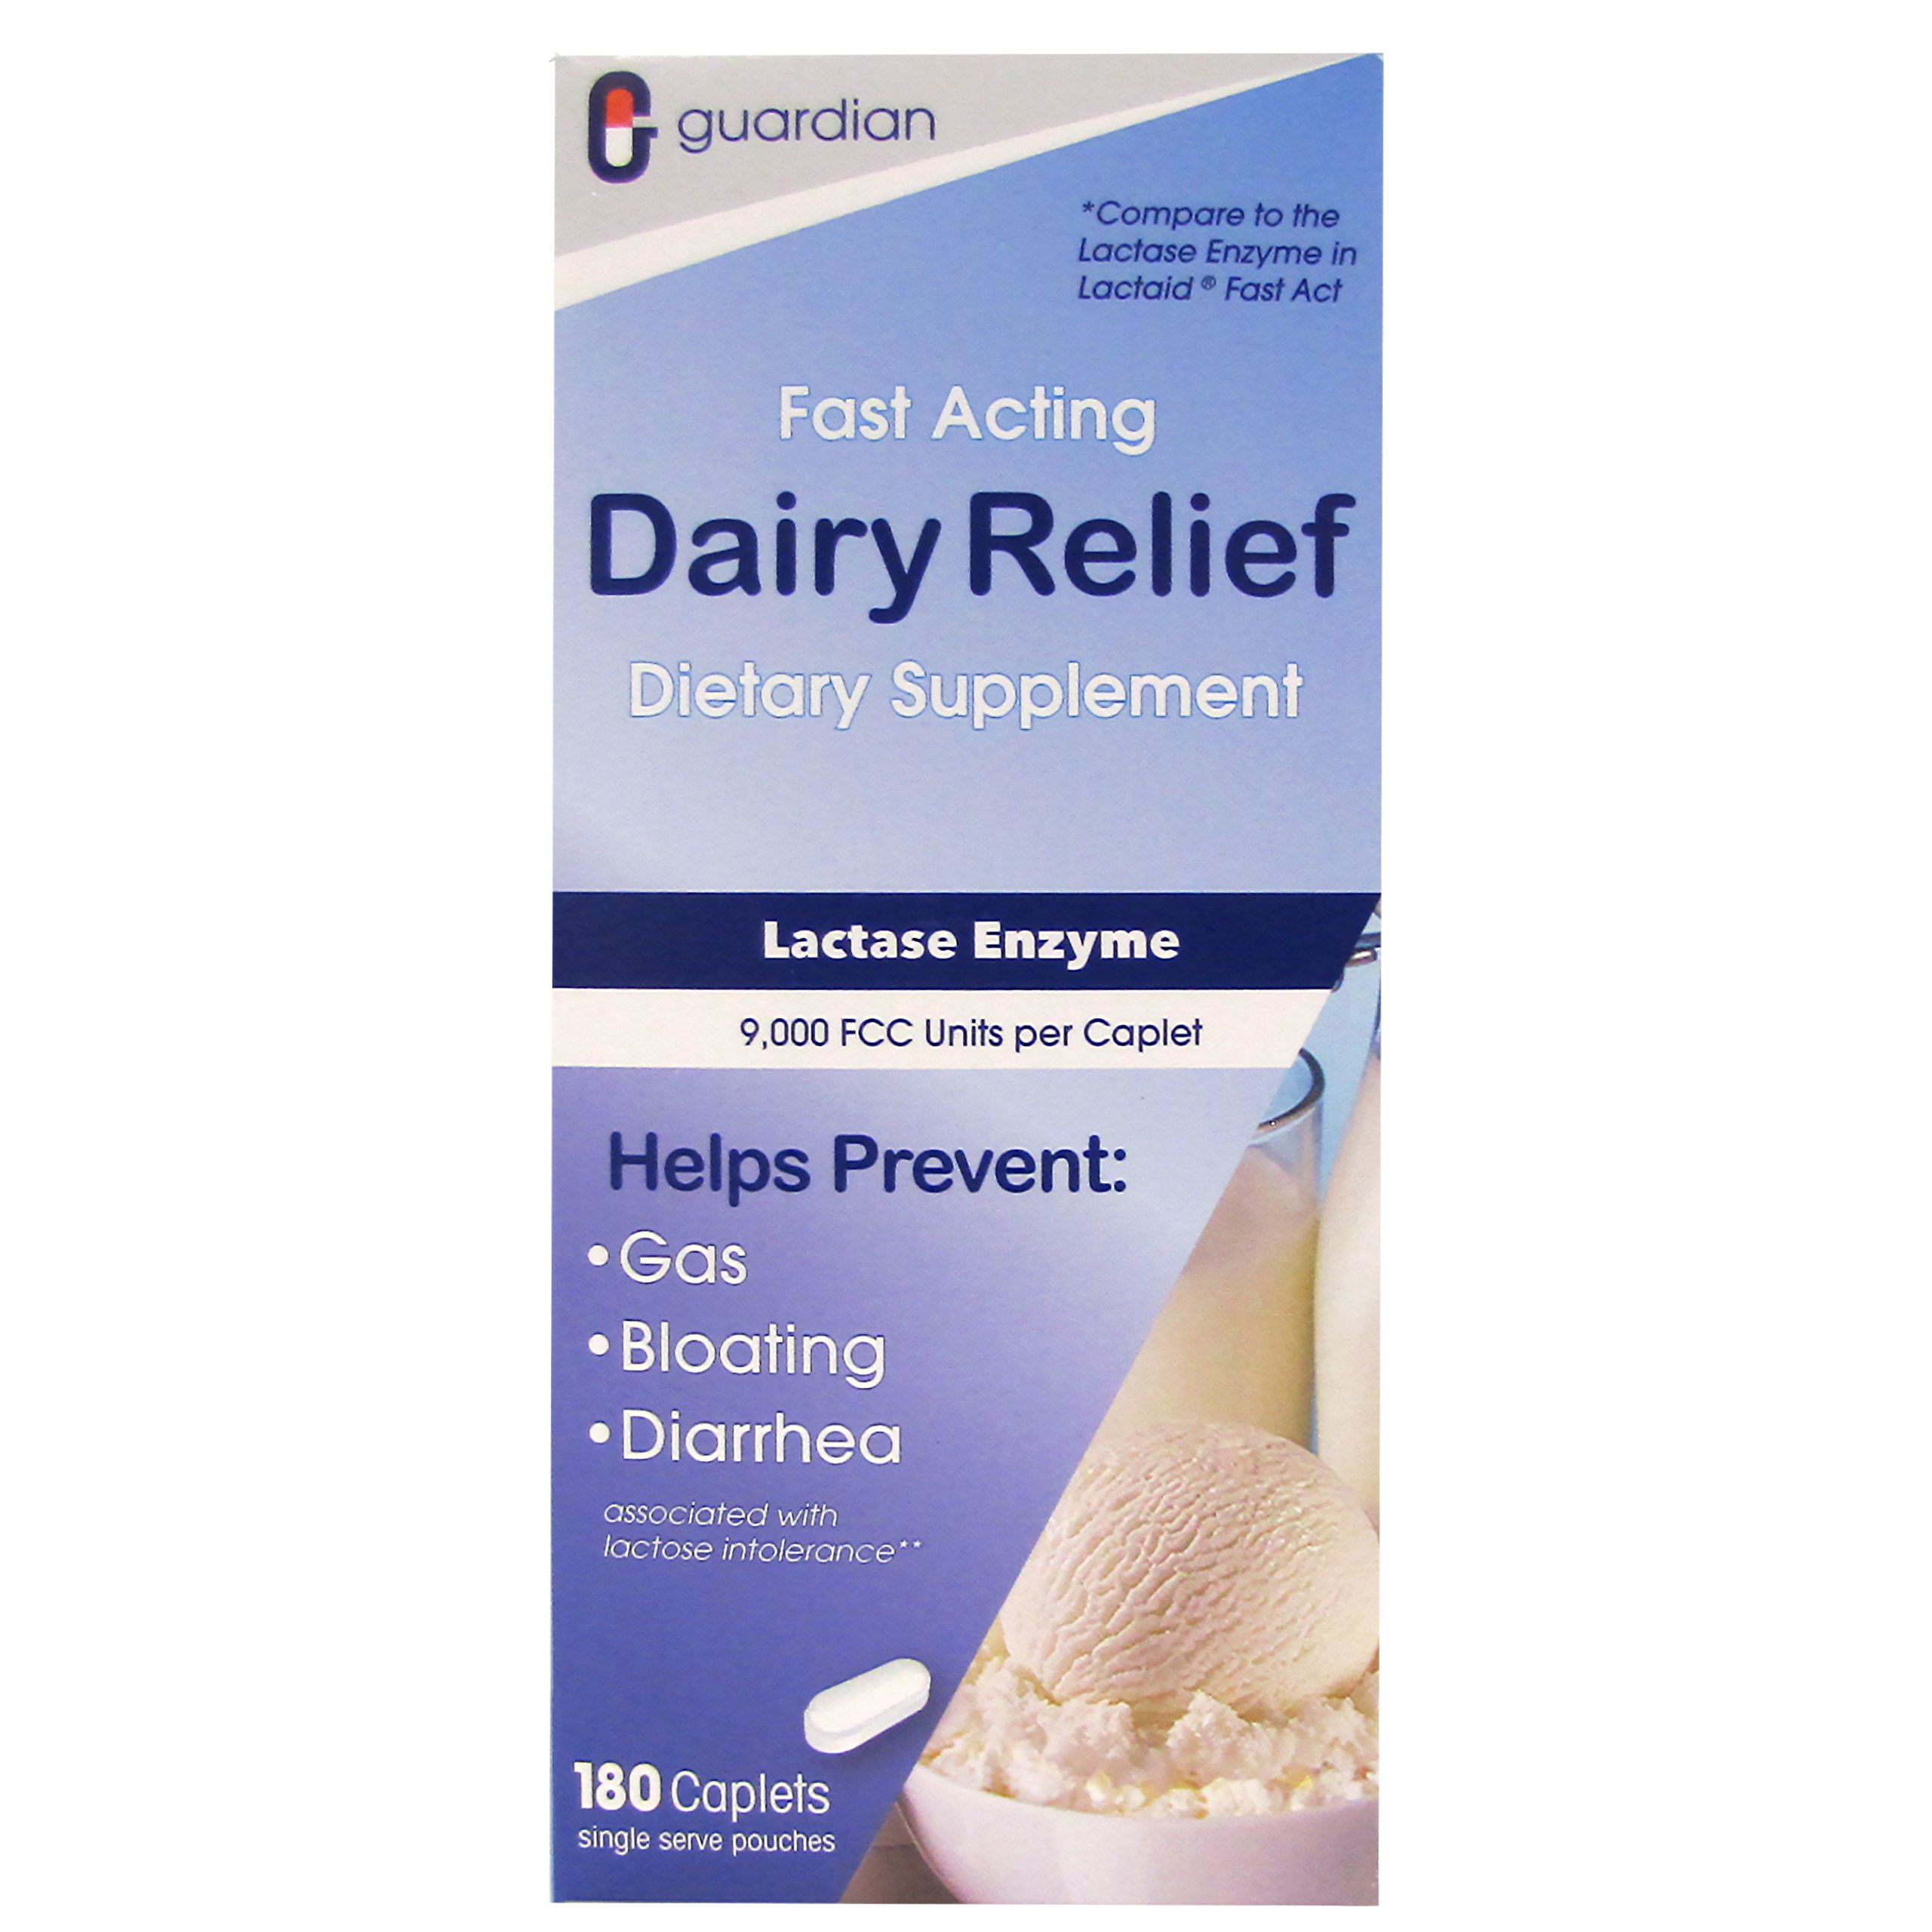 Guardian Dairy Relief Fast Acting Caplets, Lactase Enzyme, 180 CT